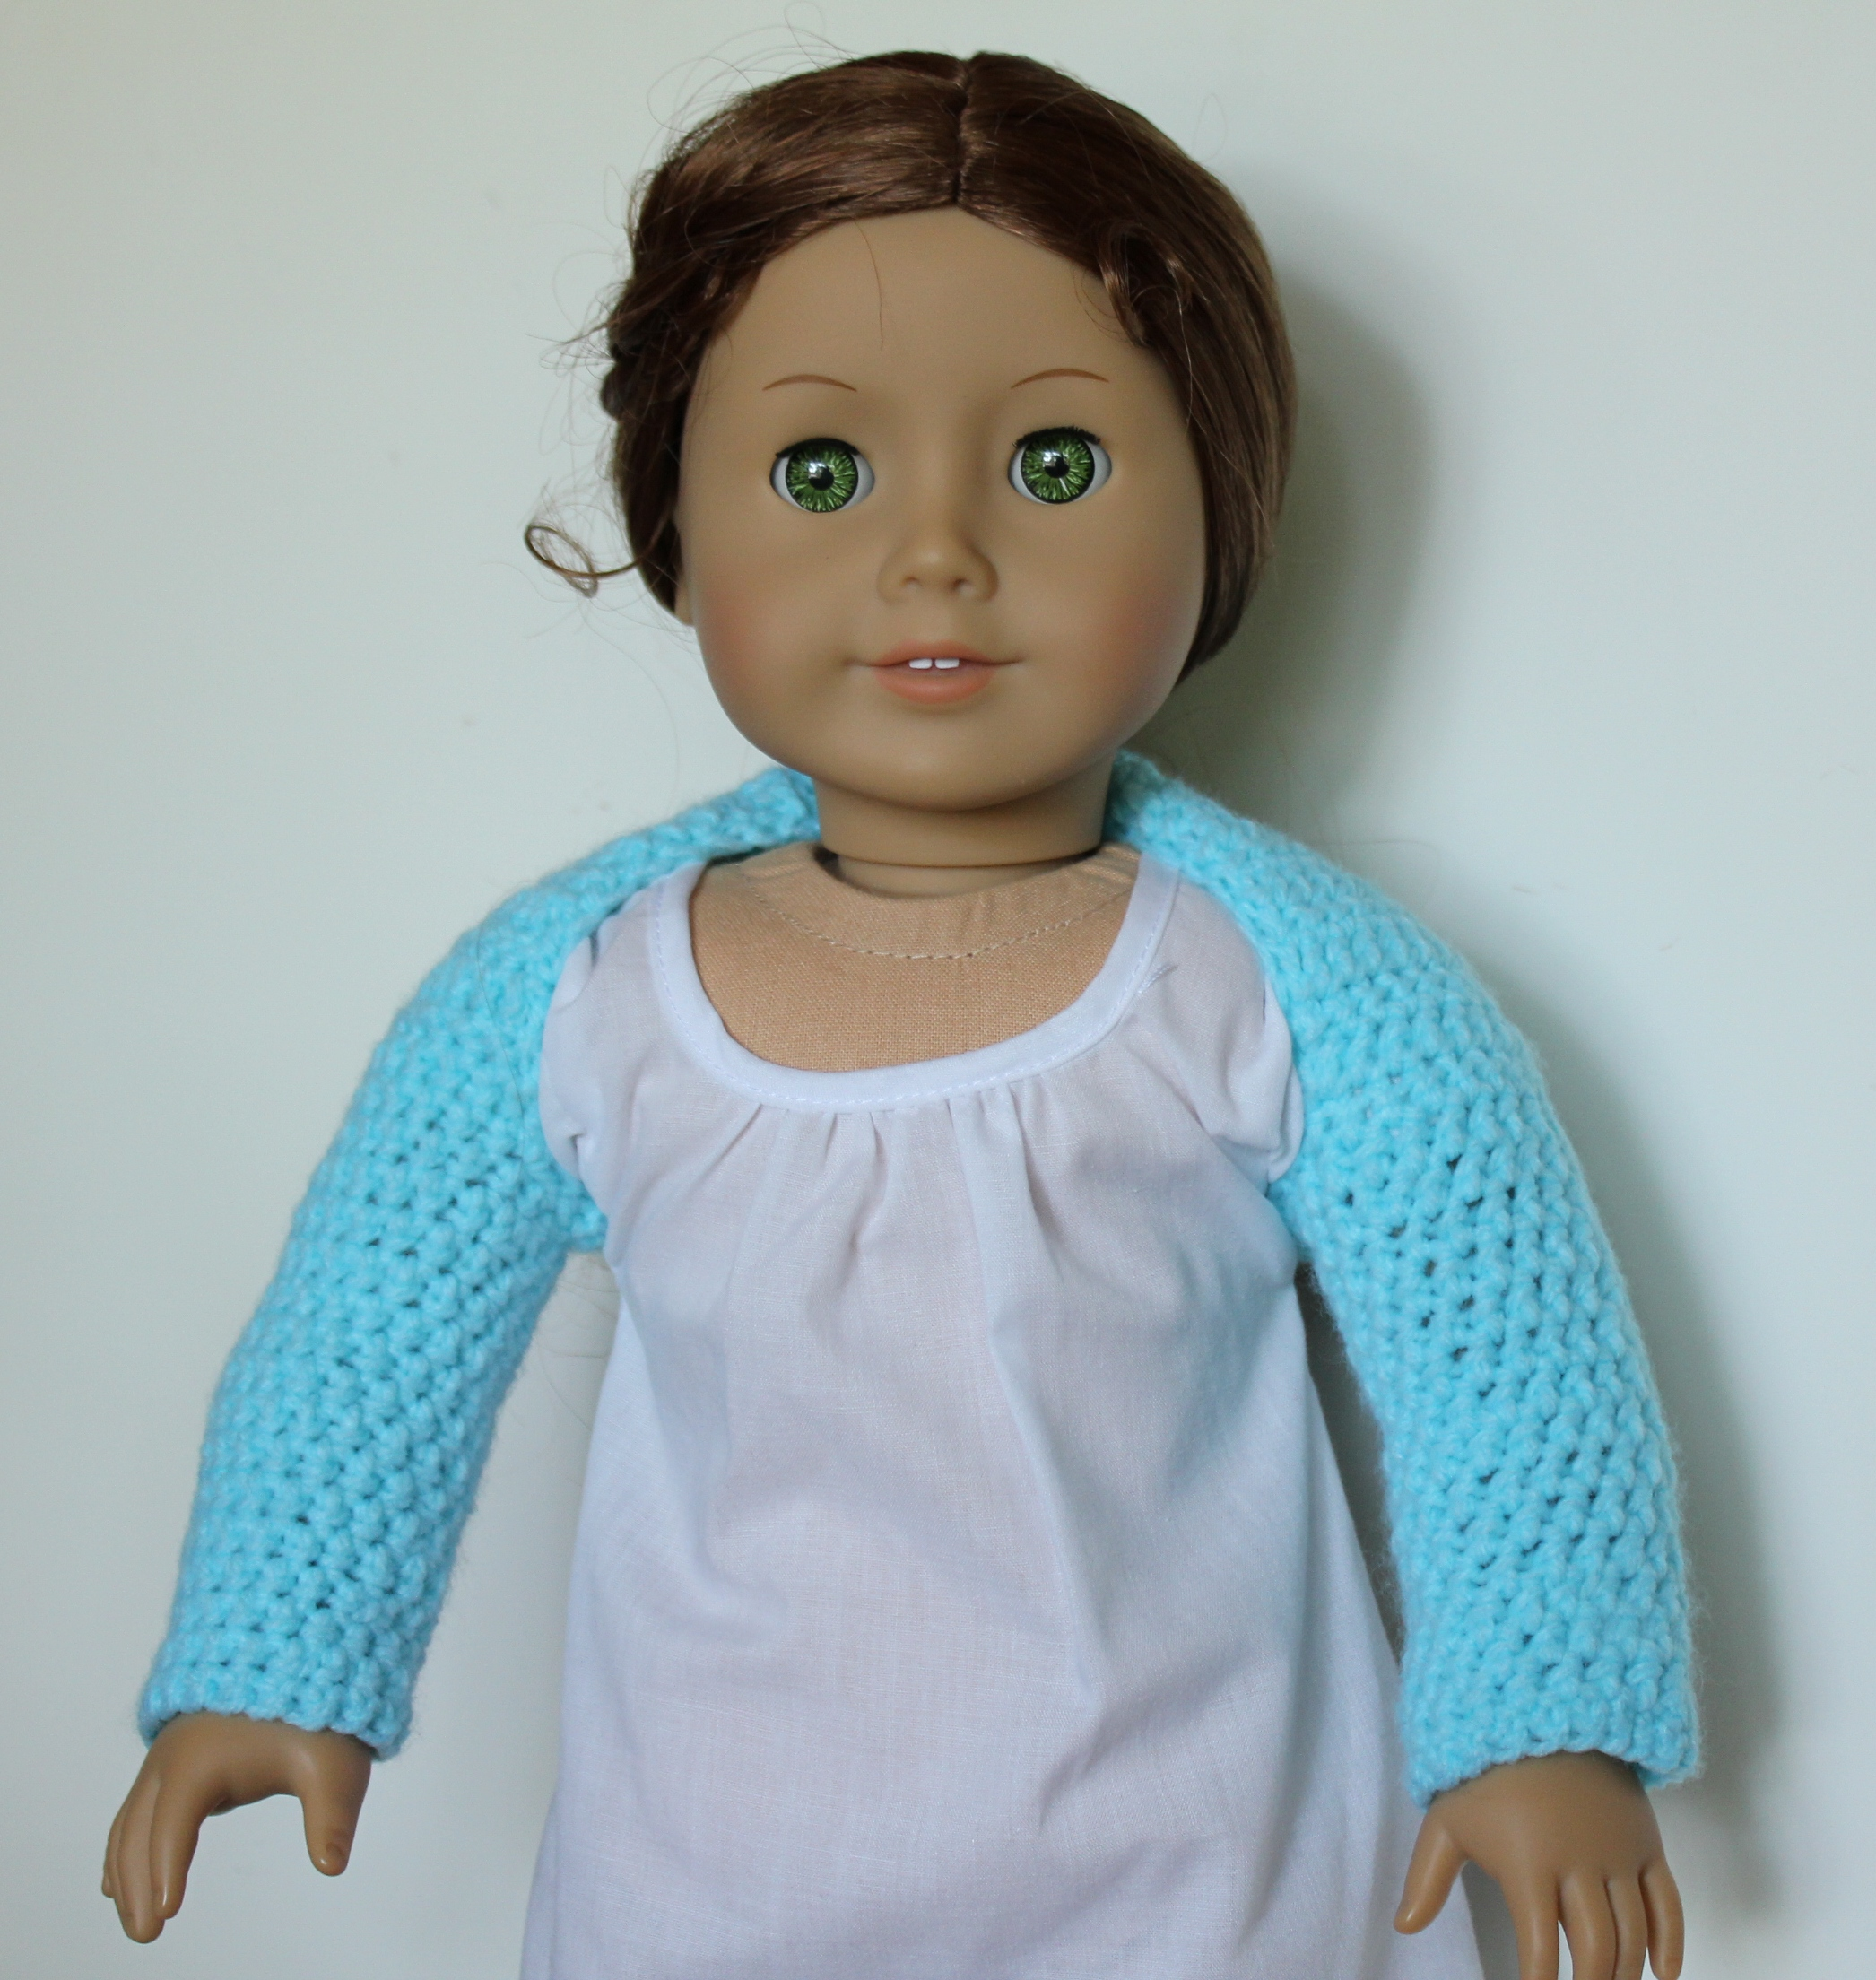 My Daughter\'s American Girl Doll Needed A New Crocheted Ballet Shrug ...